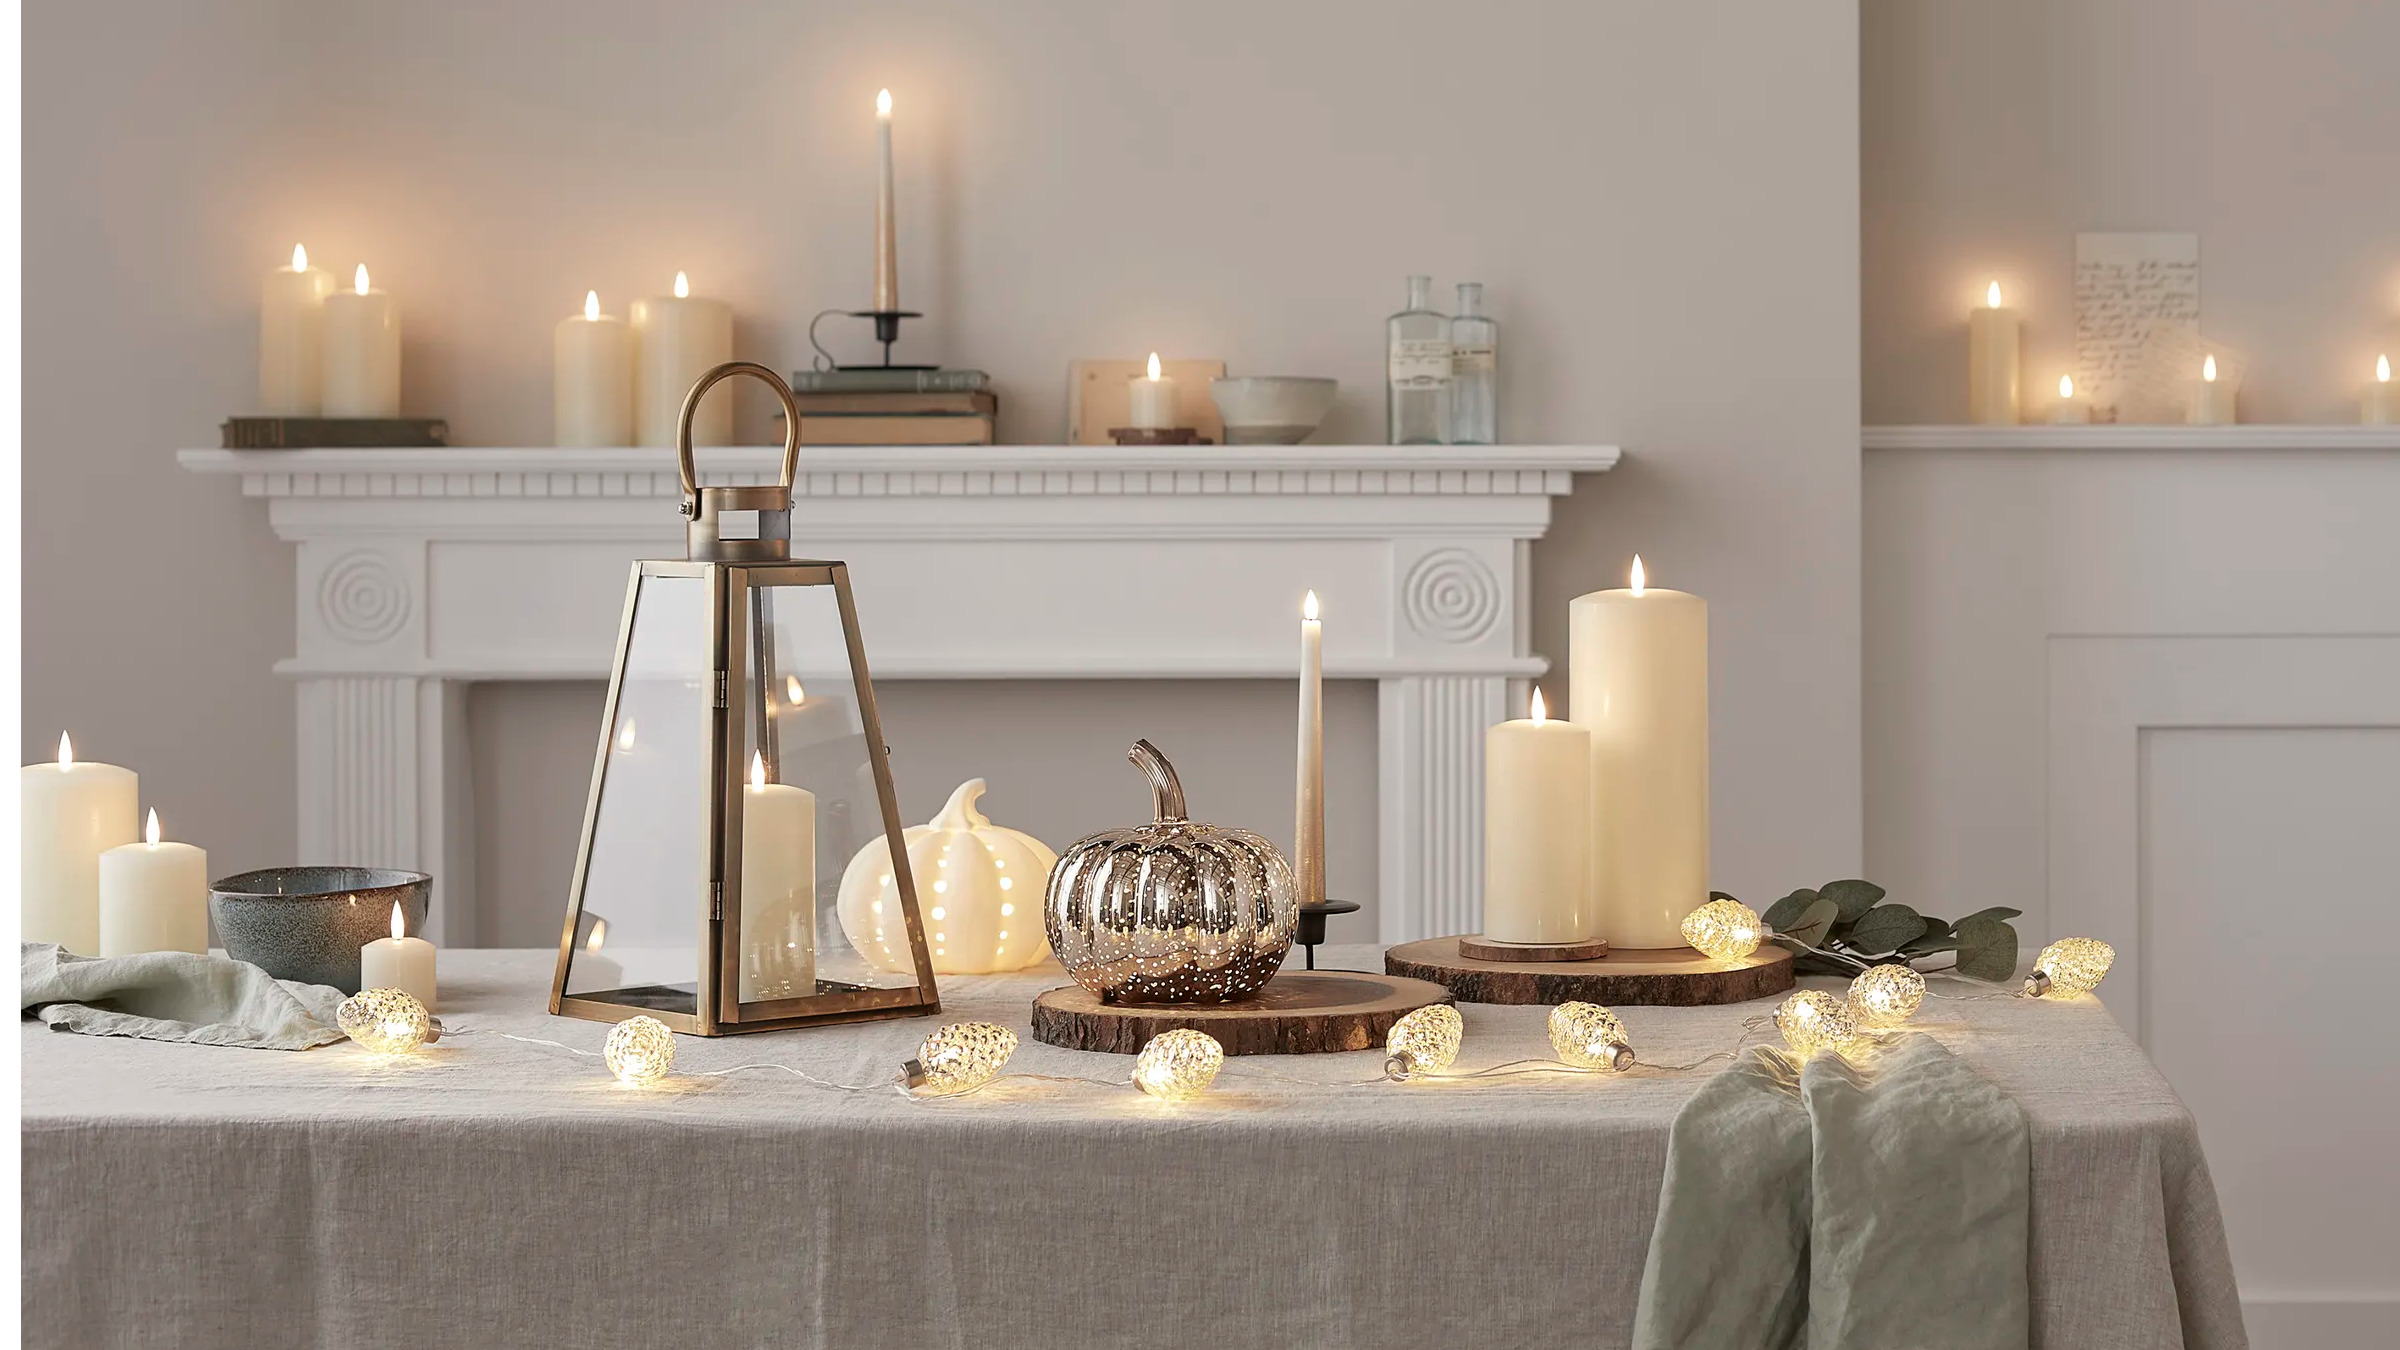 Autumnal table with pumpkin light illuminated as centrepiece with lantern and candles displayed alongside